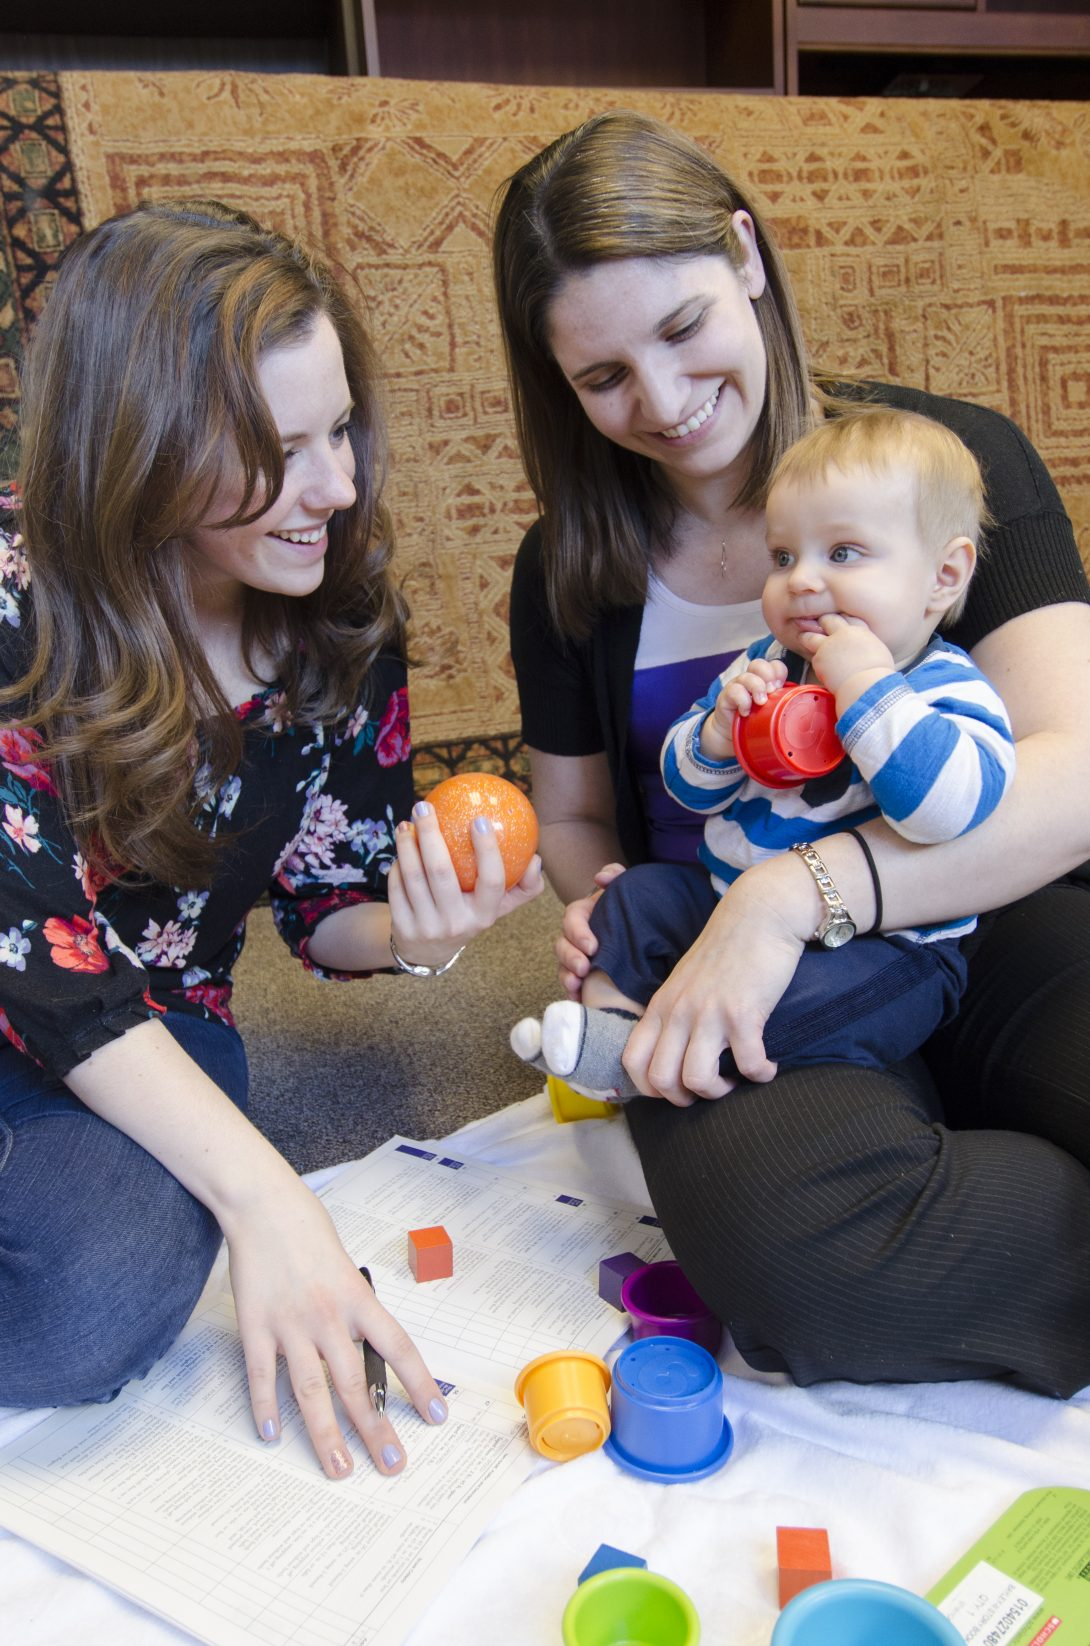 Two women playing with a baby with colored blocks